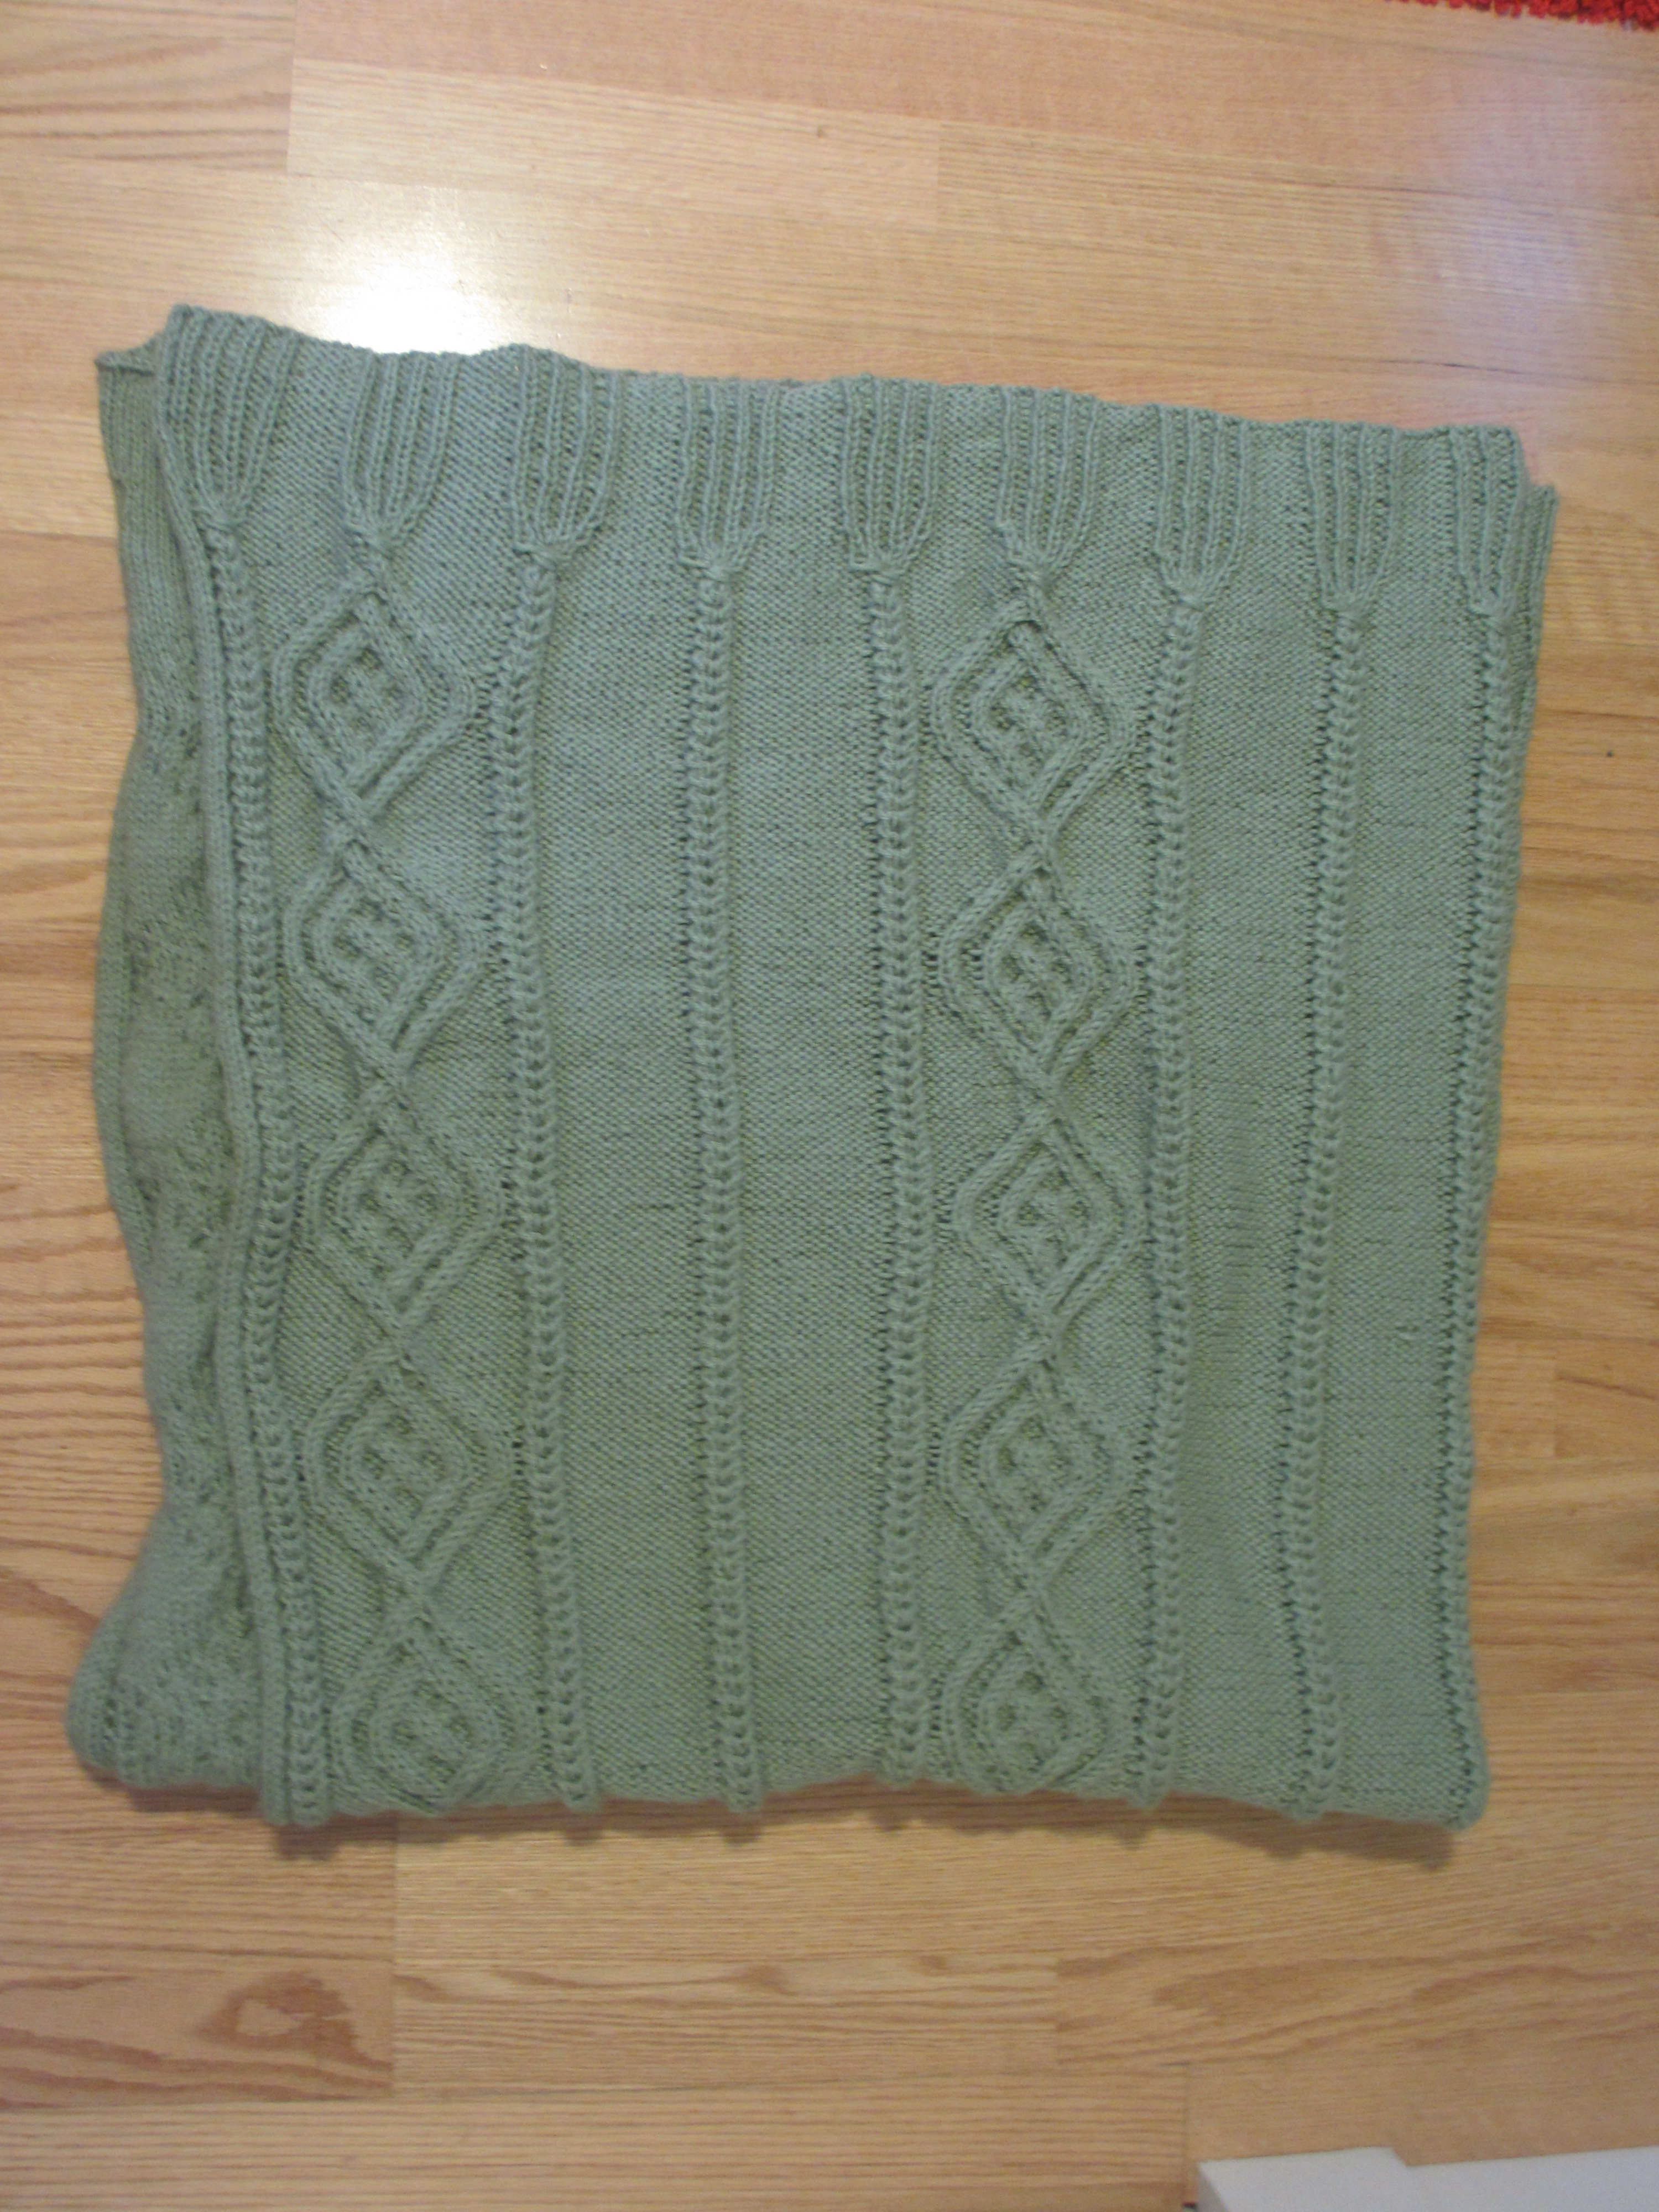 Pattern from Kitted Aran Afghans, by Melissa Leapman